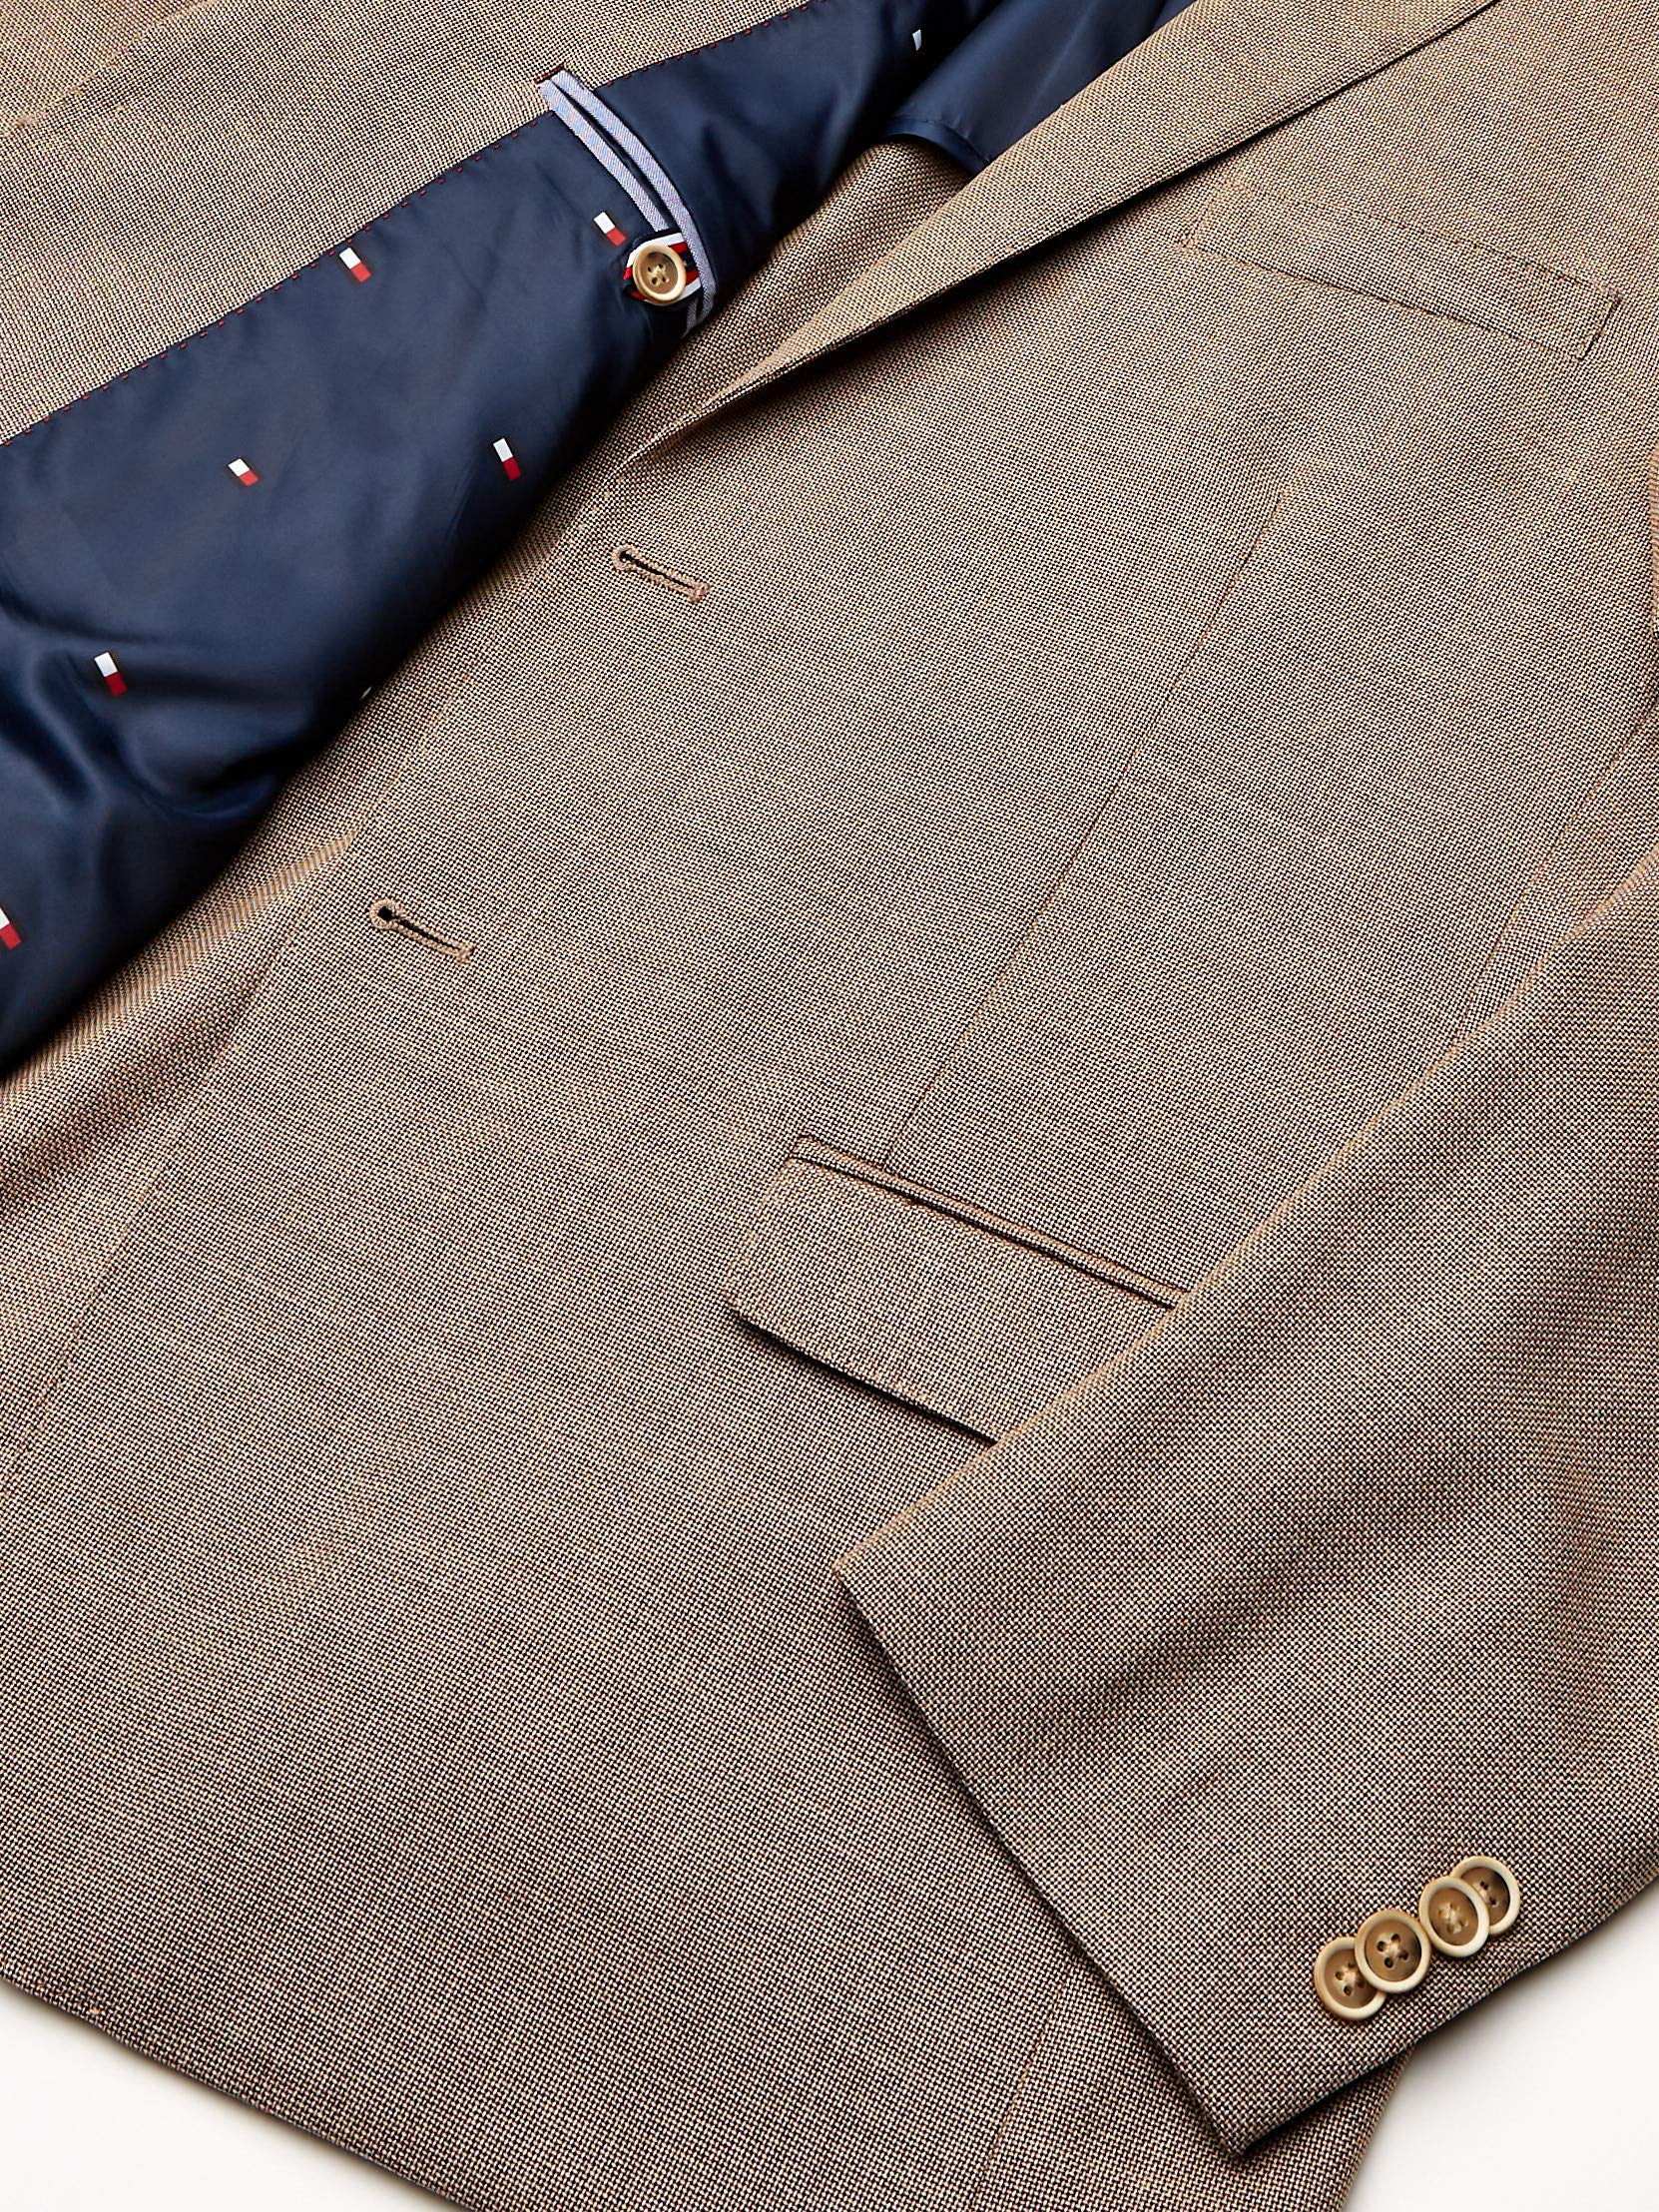 Tommy Hilfiger Men's Big and Tall Modern Blazer, Rustic Brown, 54R by Tommy Hilfiger (Image #4)